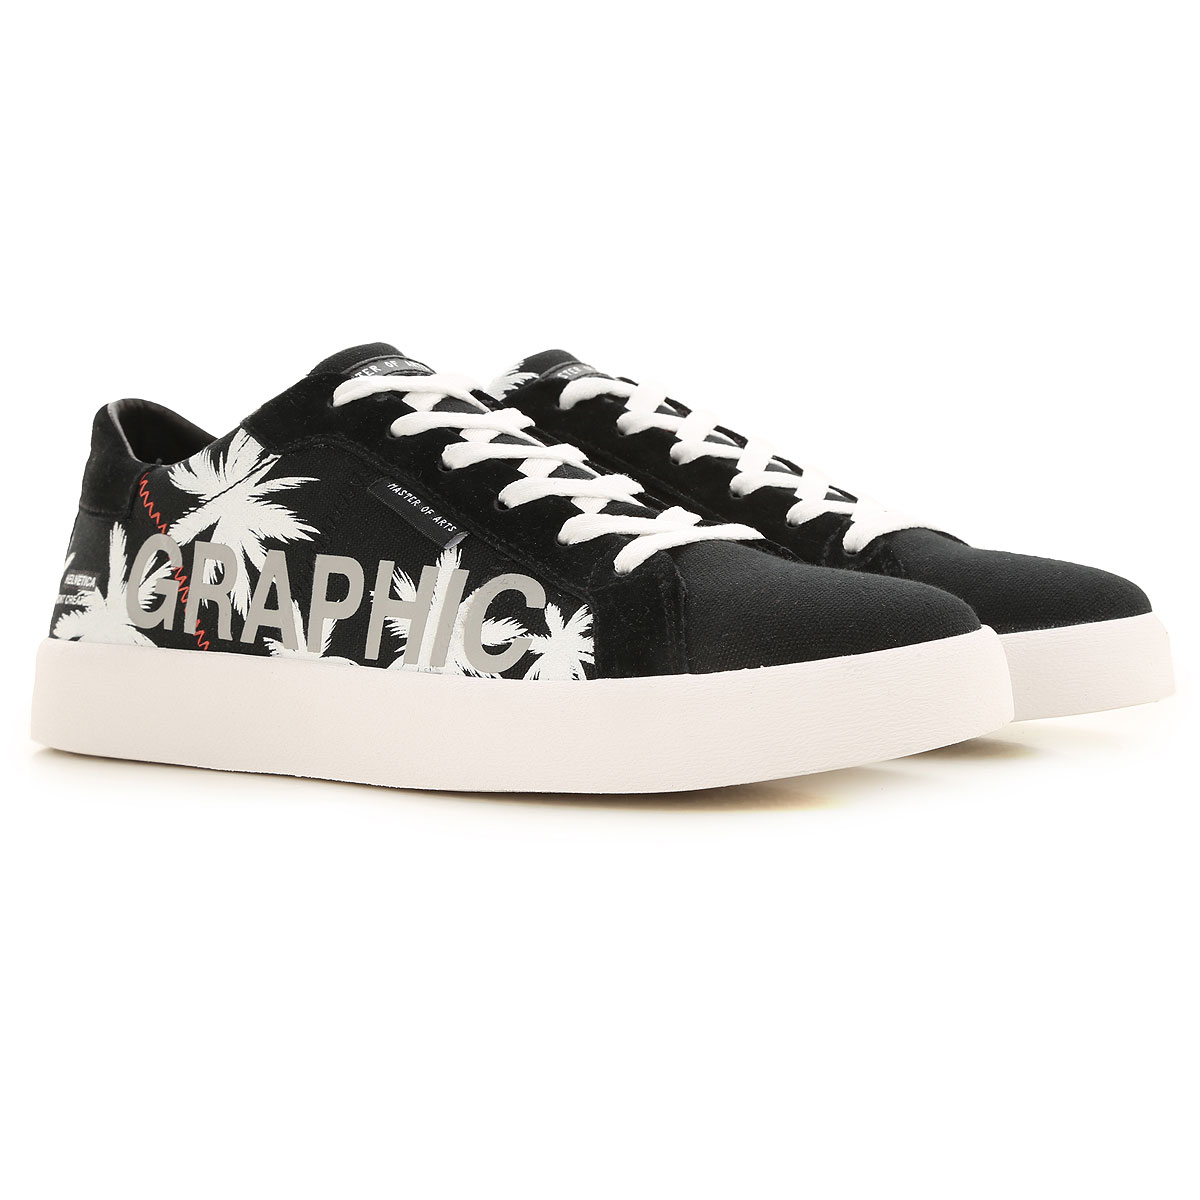 Moa Master of Arts Sneakers for Men On Sale, Black, Fabric, 2019, 10 10.5 11.5 8 9